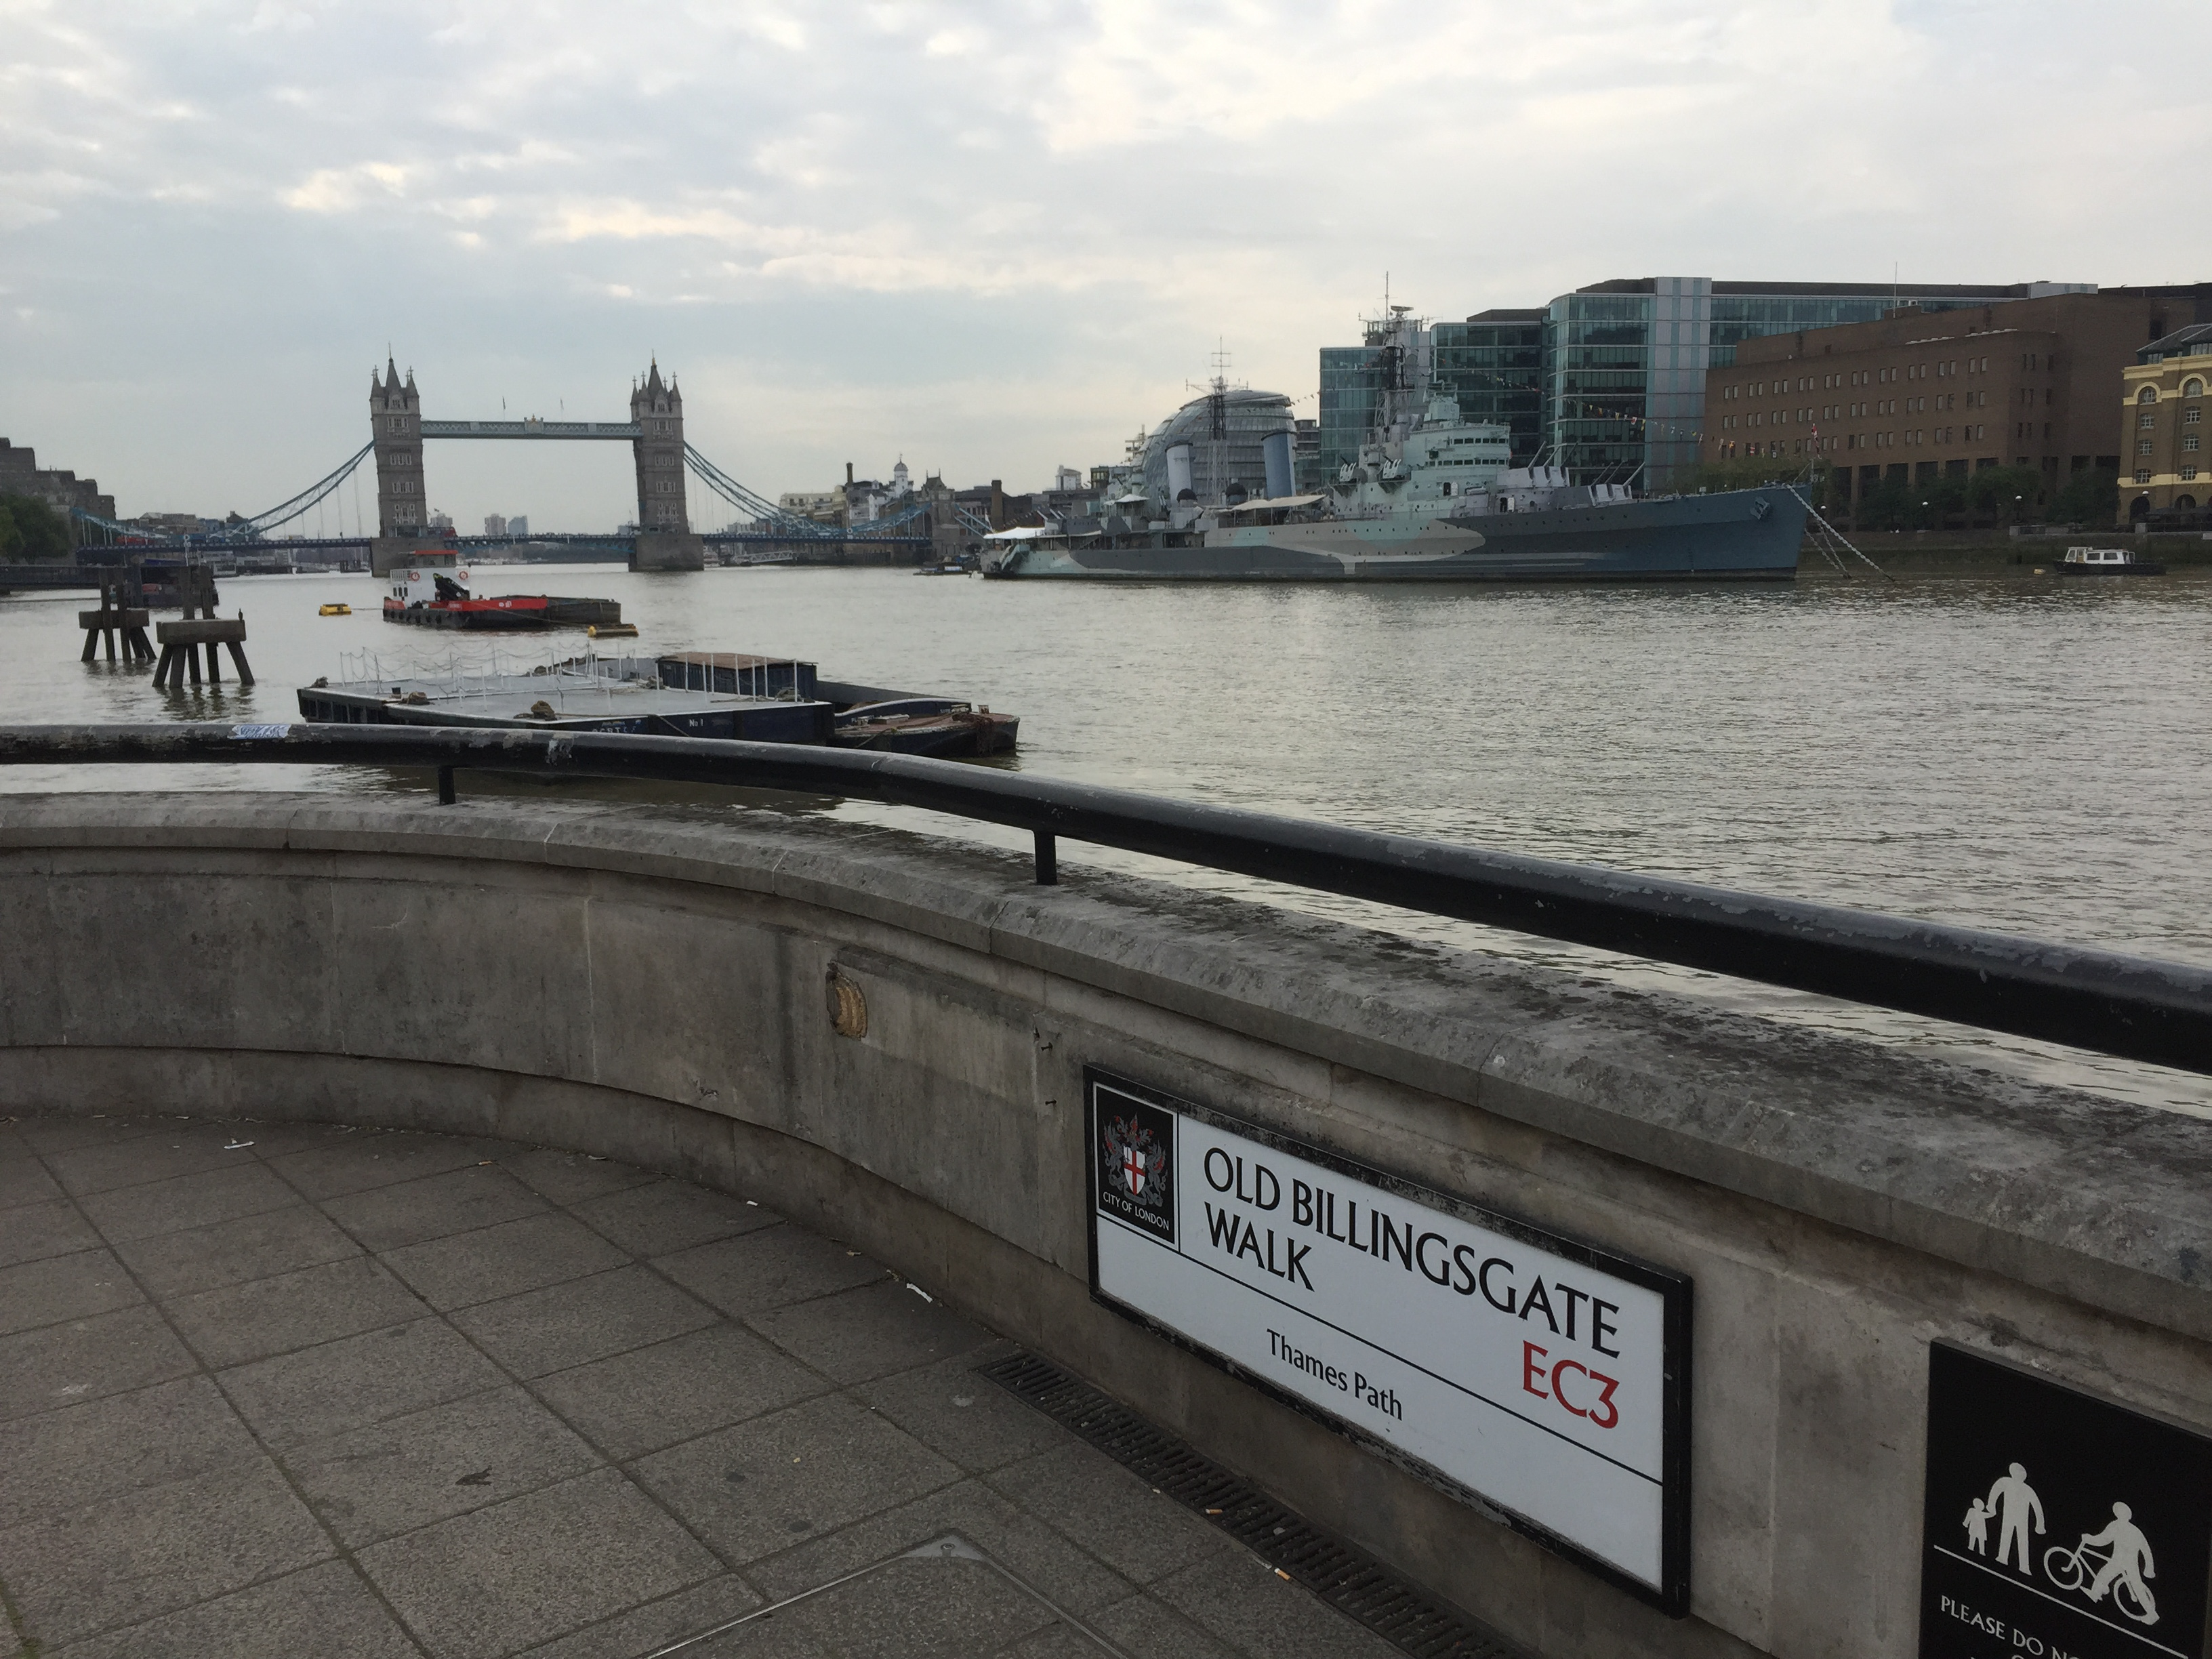 Mission Impossible & Thames Path